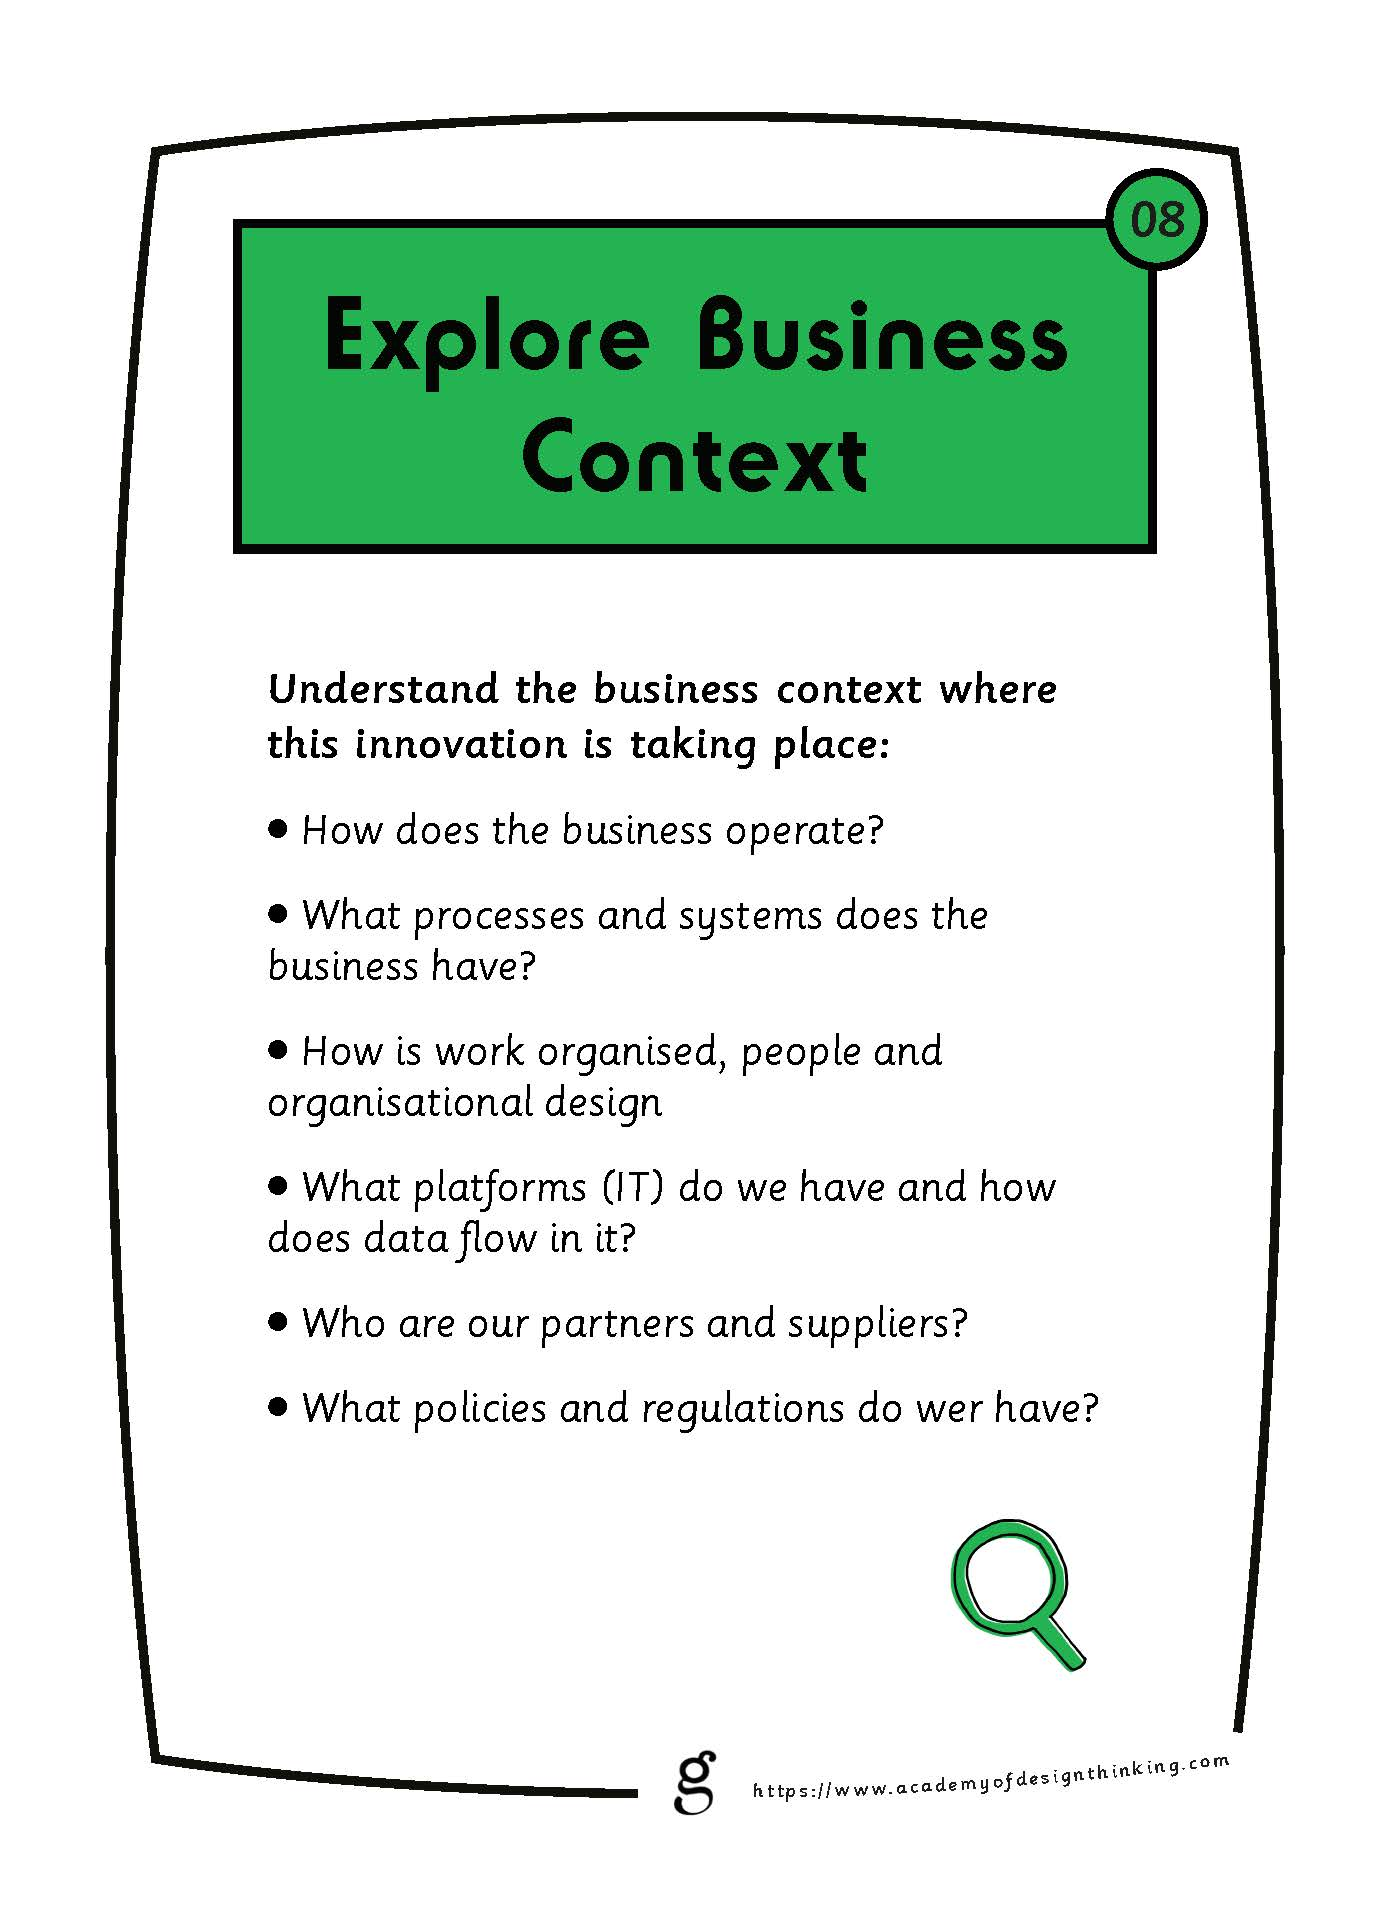 Explore Business Context